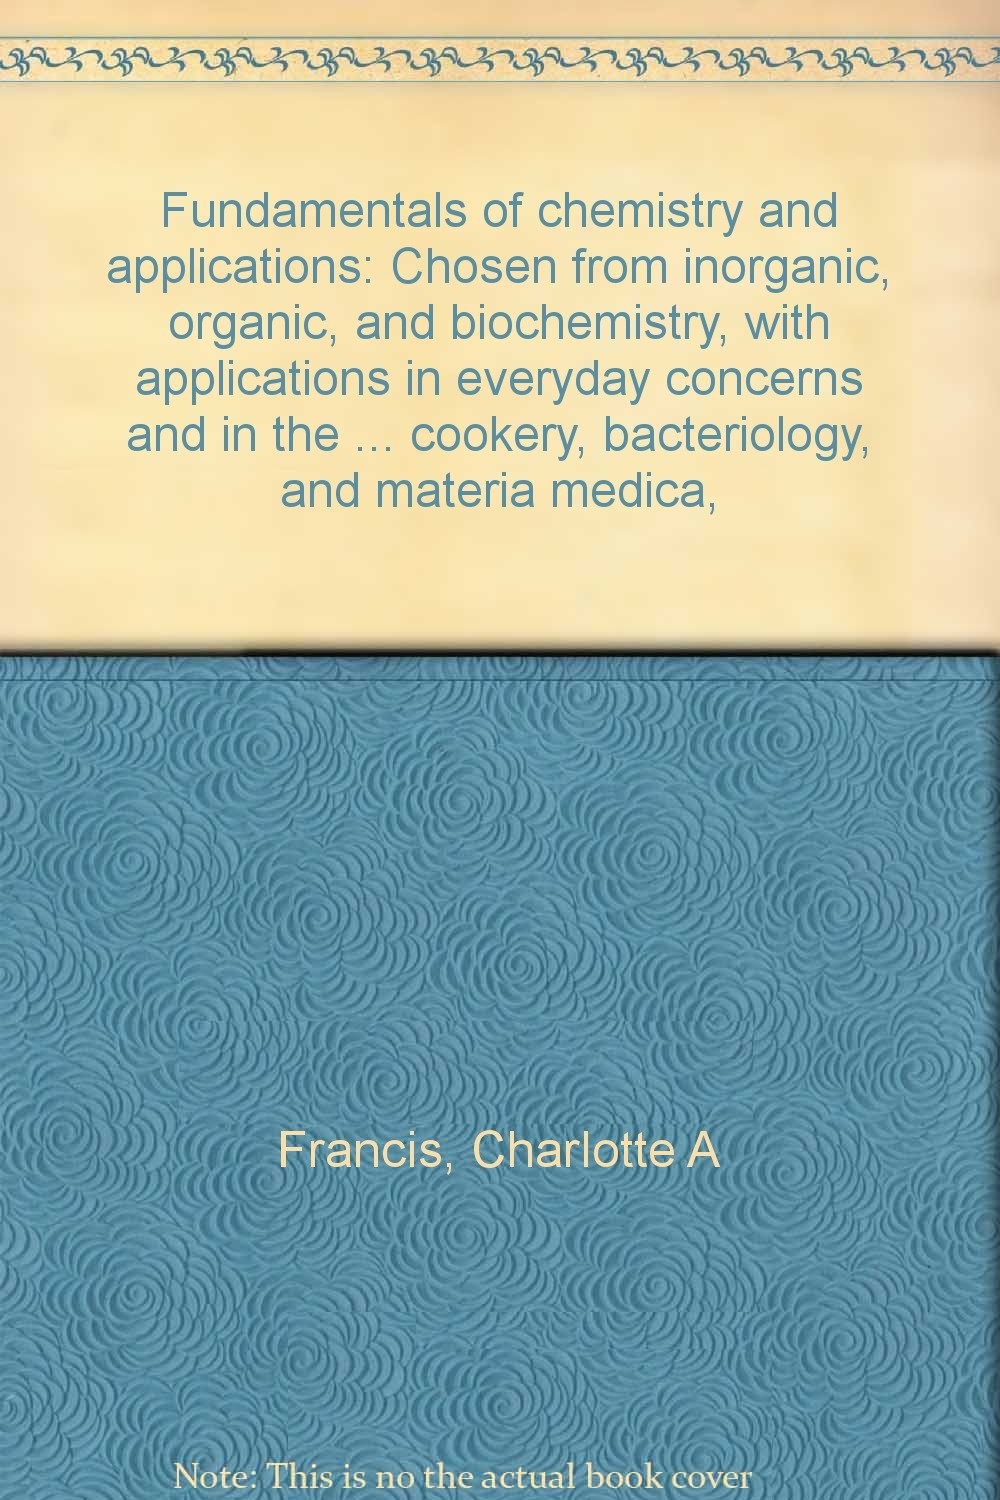 Fundamentals of chemistry and applications: Chosen from inorganic, organic, and biochemistry, with applications in everyday concerns and in the ... cookery, bacteriology, and materia medica,